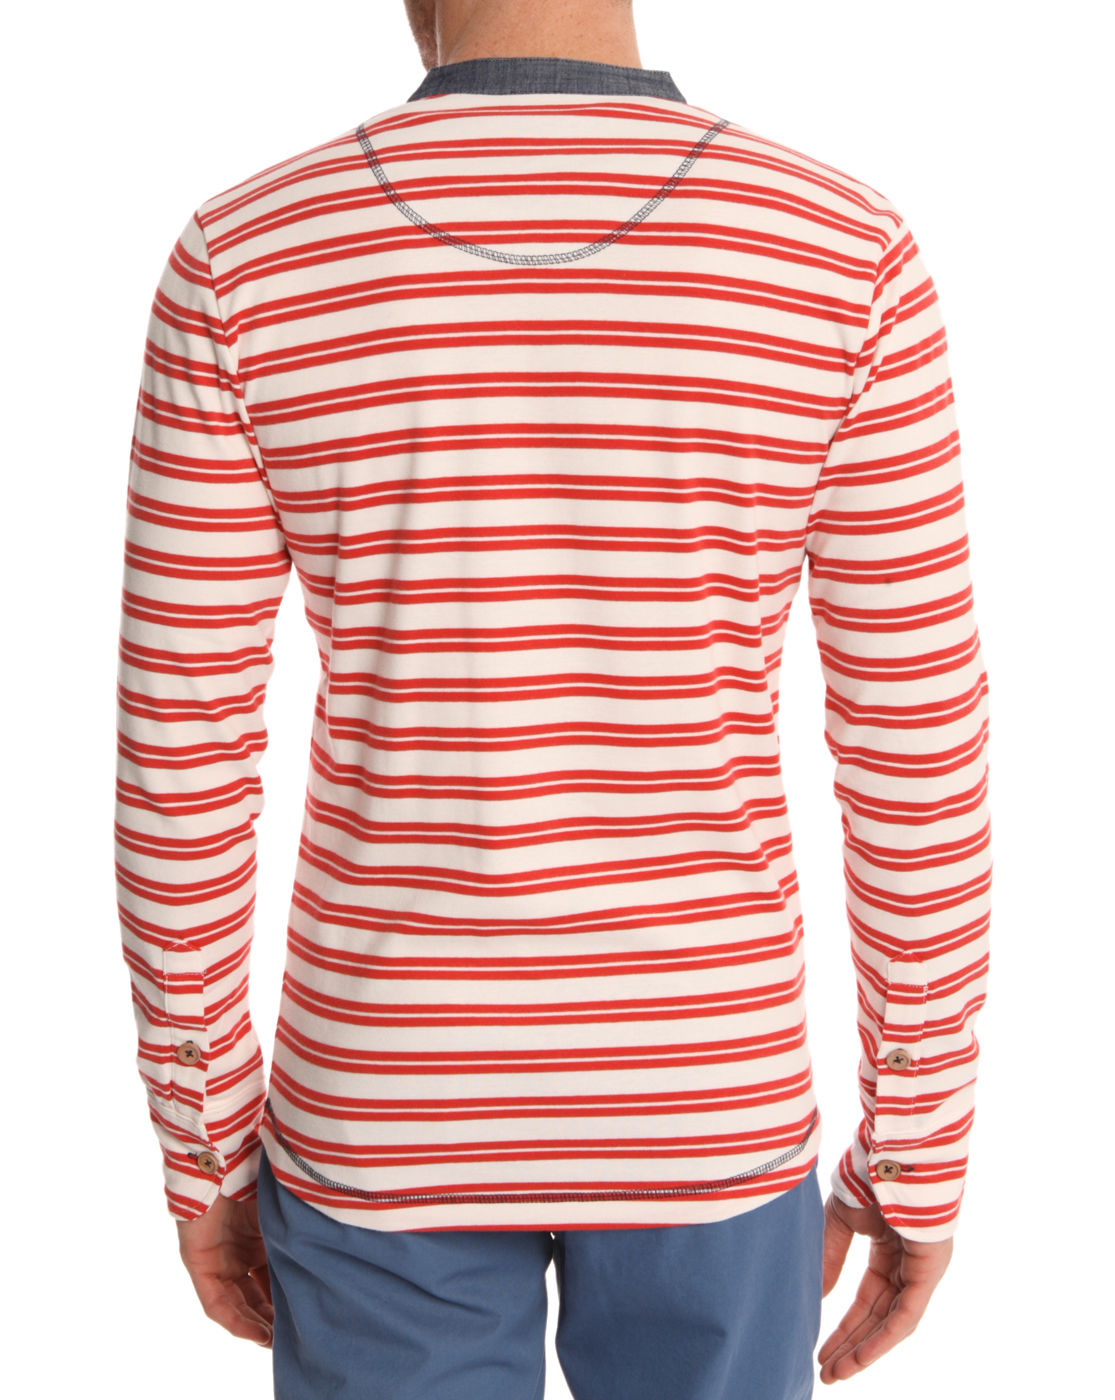 knowledge cotton apparel red striped t shirt in red for men lyst. Black Bedroom Furniture Sets. Home Design Ideas